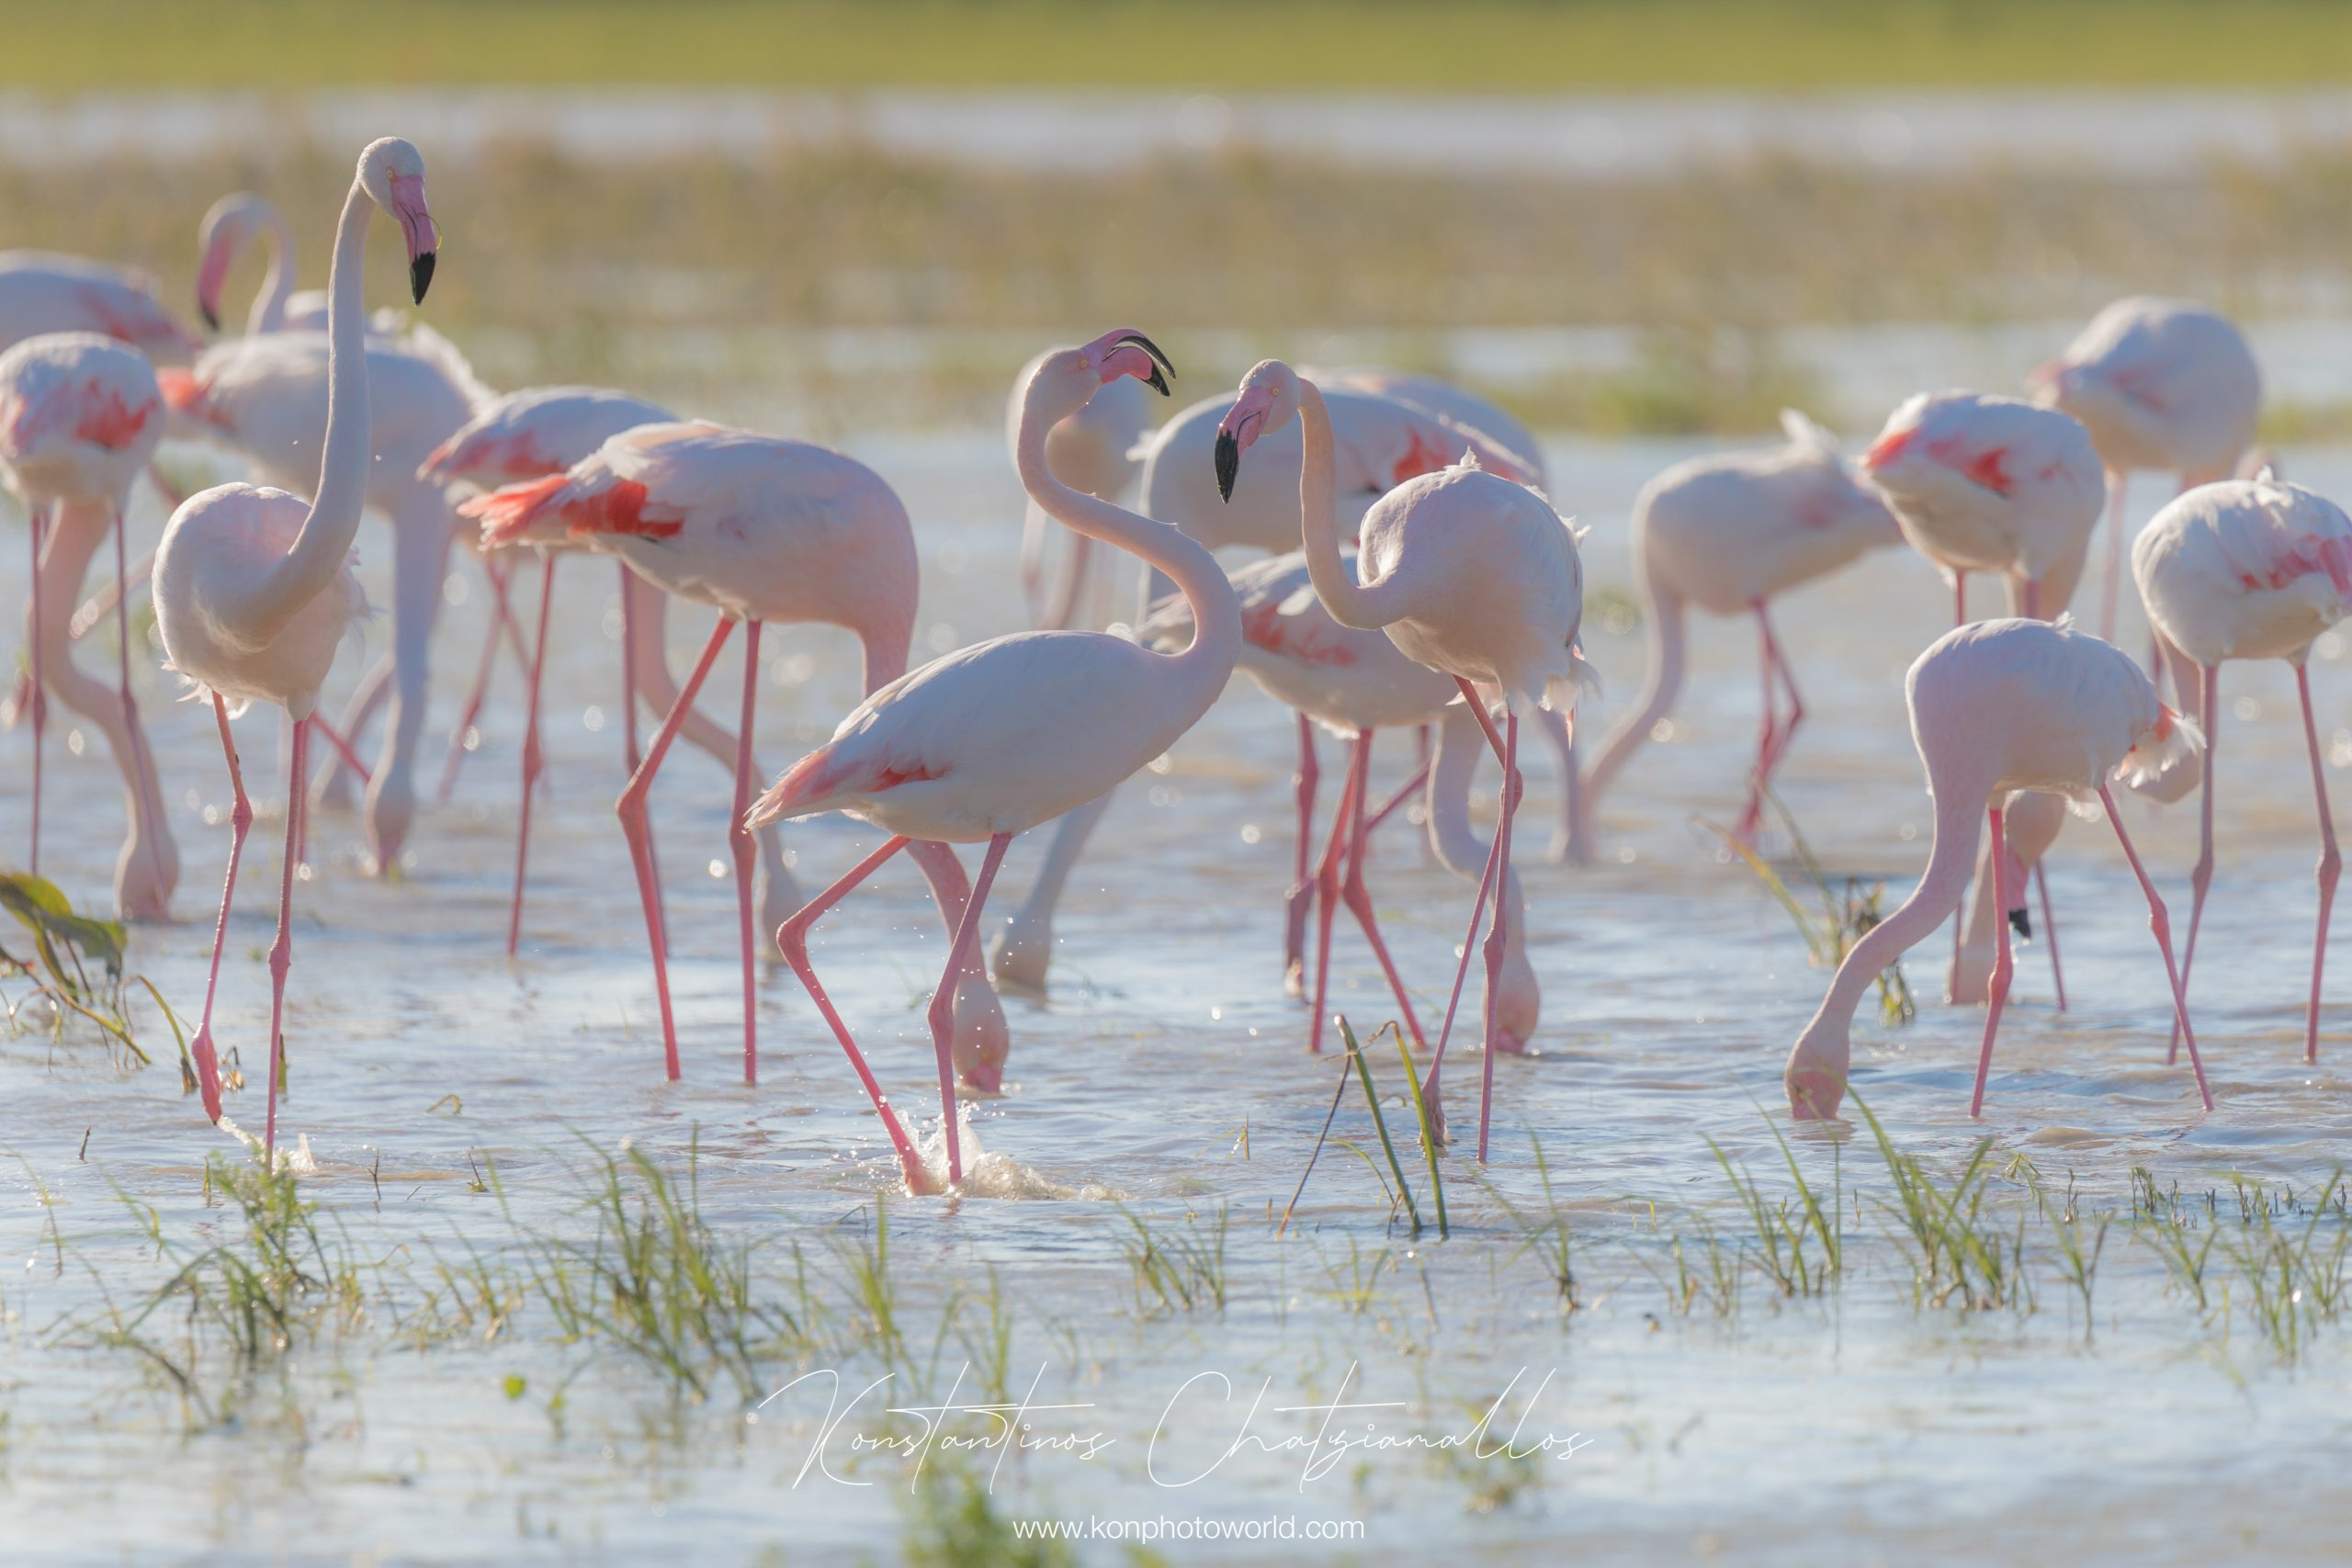 Greater flamingo / Phoenicopterus roseus